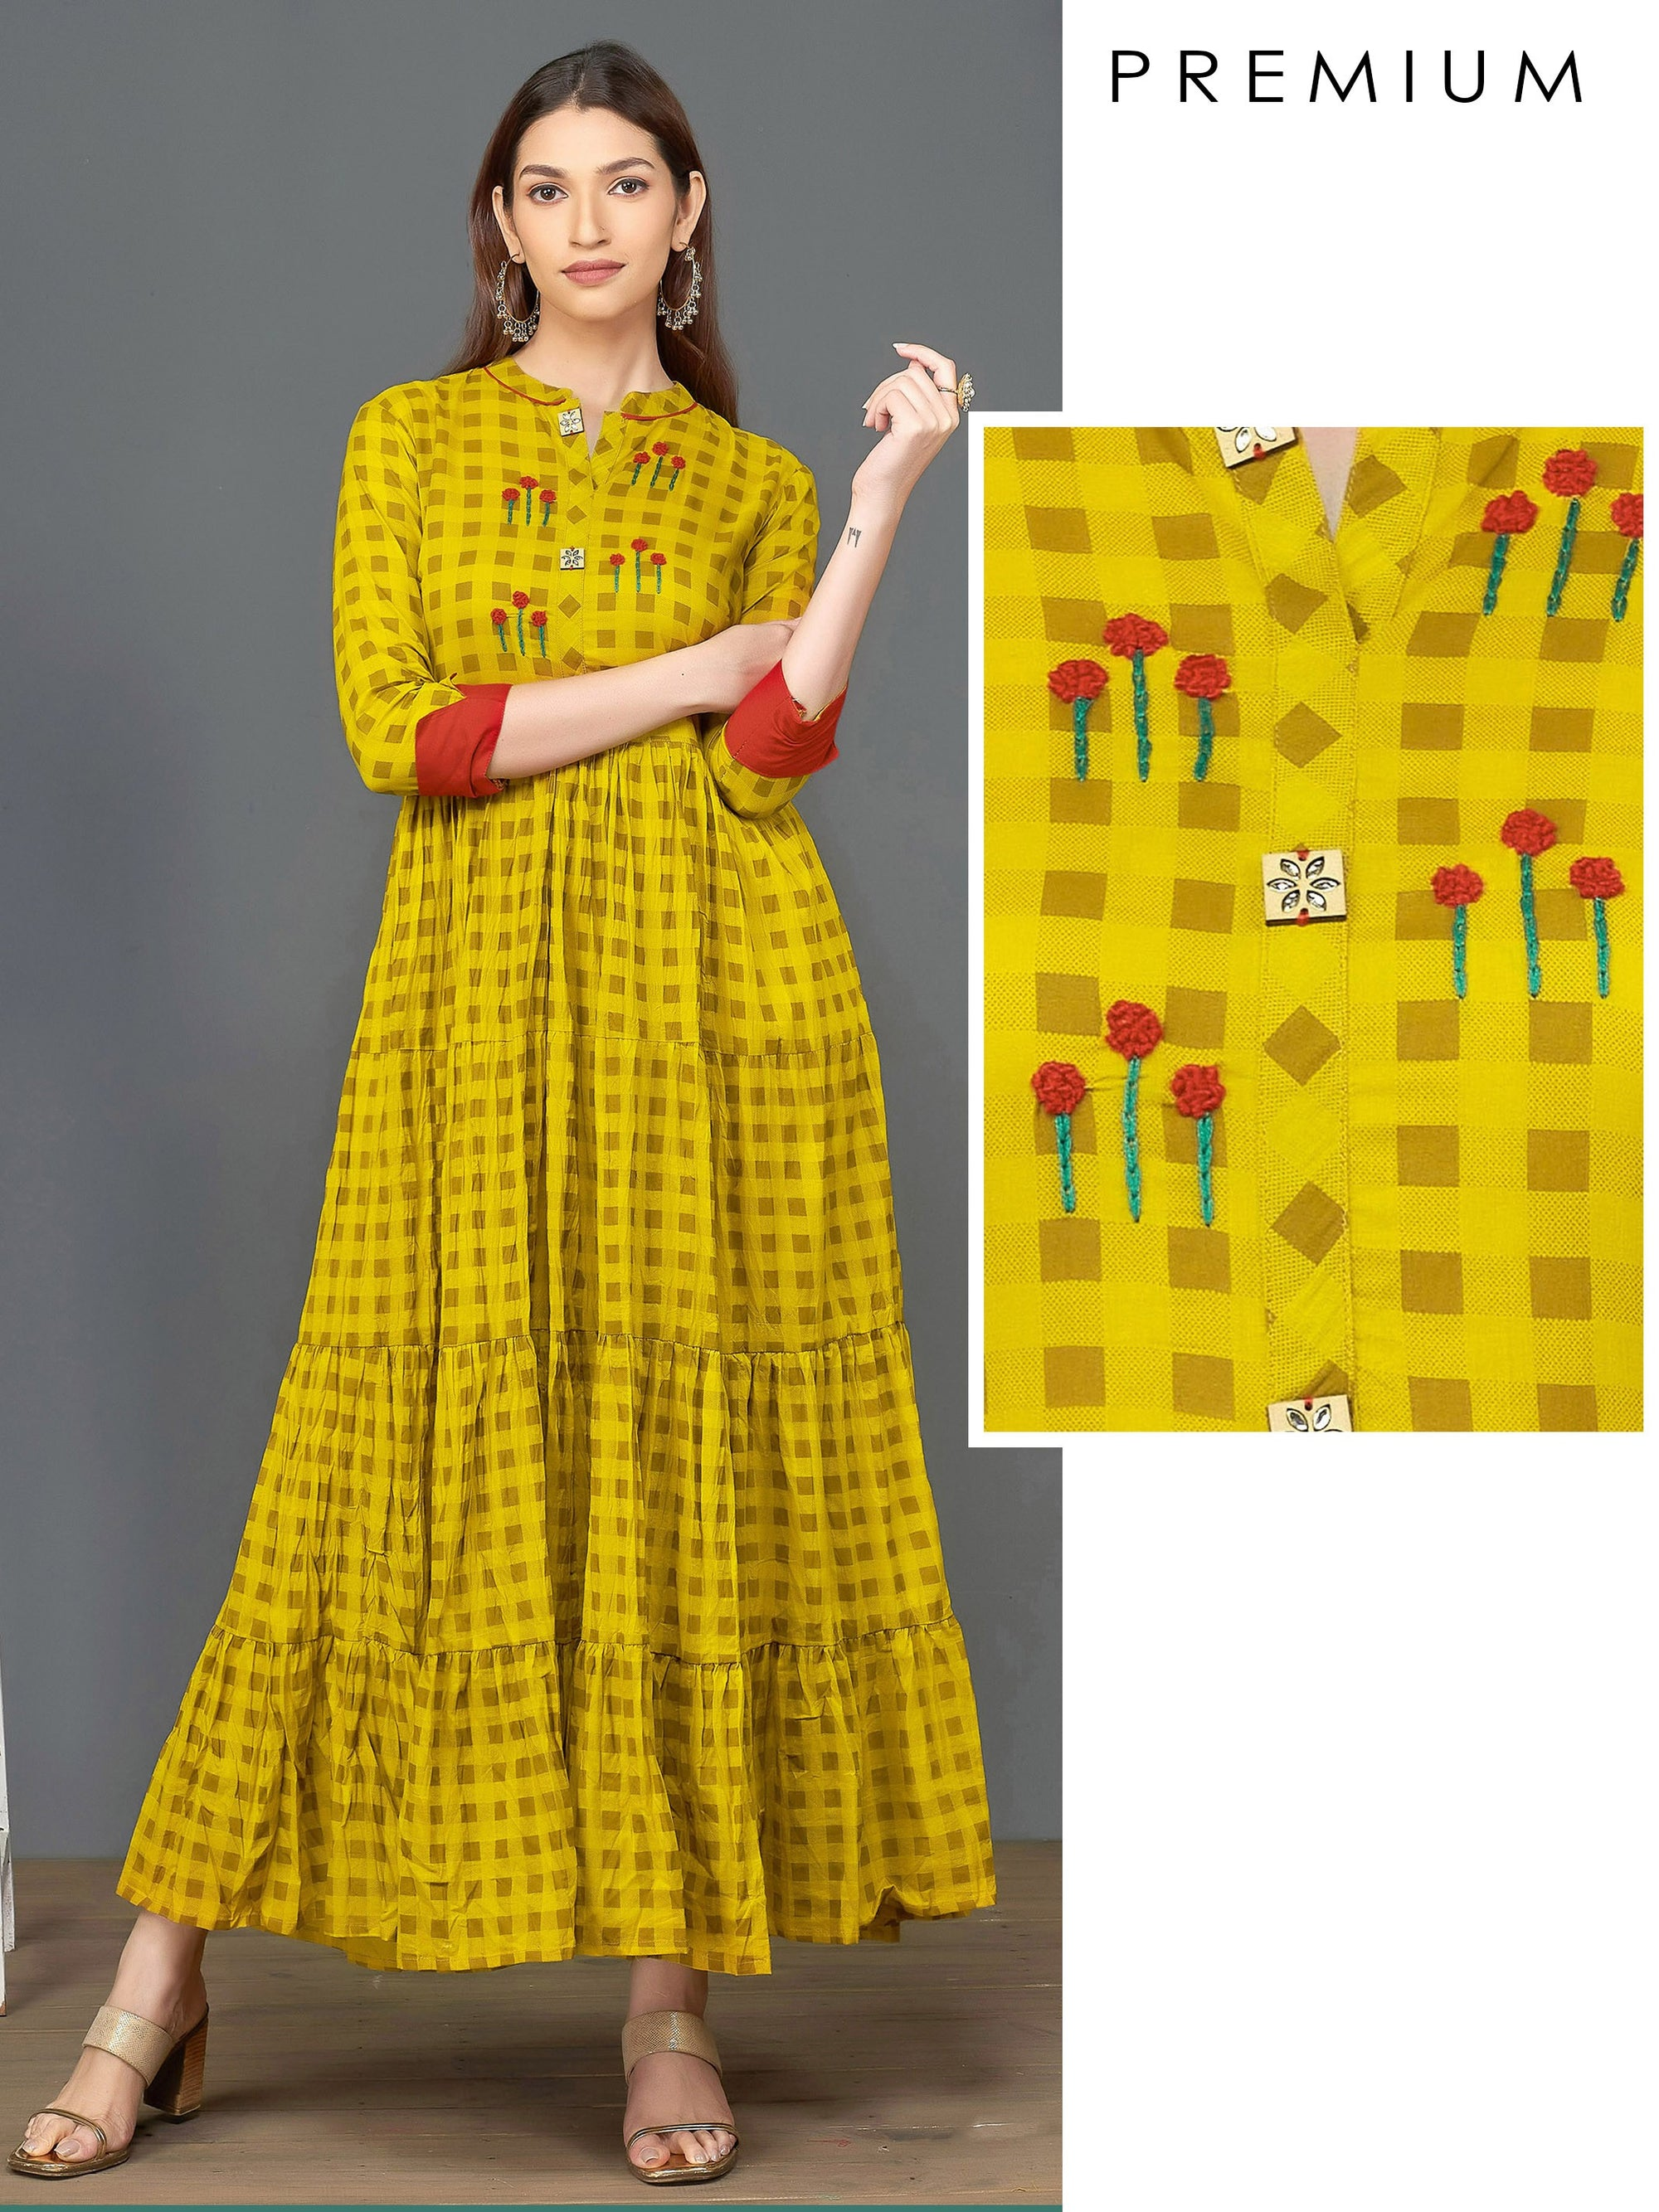 French Knot Embroidered & Checkered Tier Maxi – Mustard